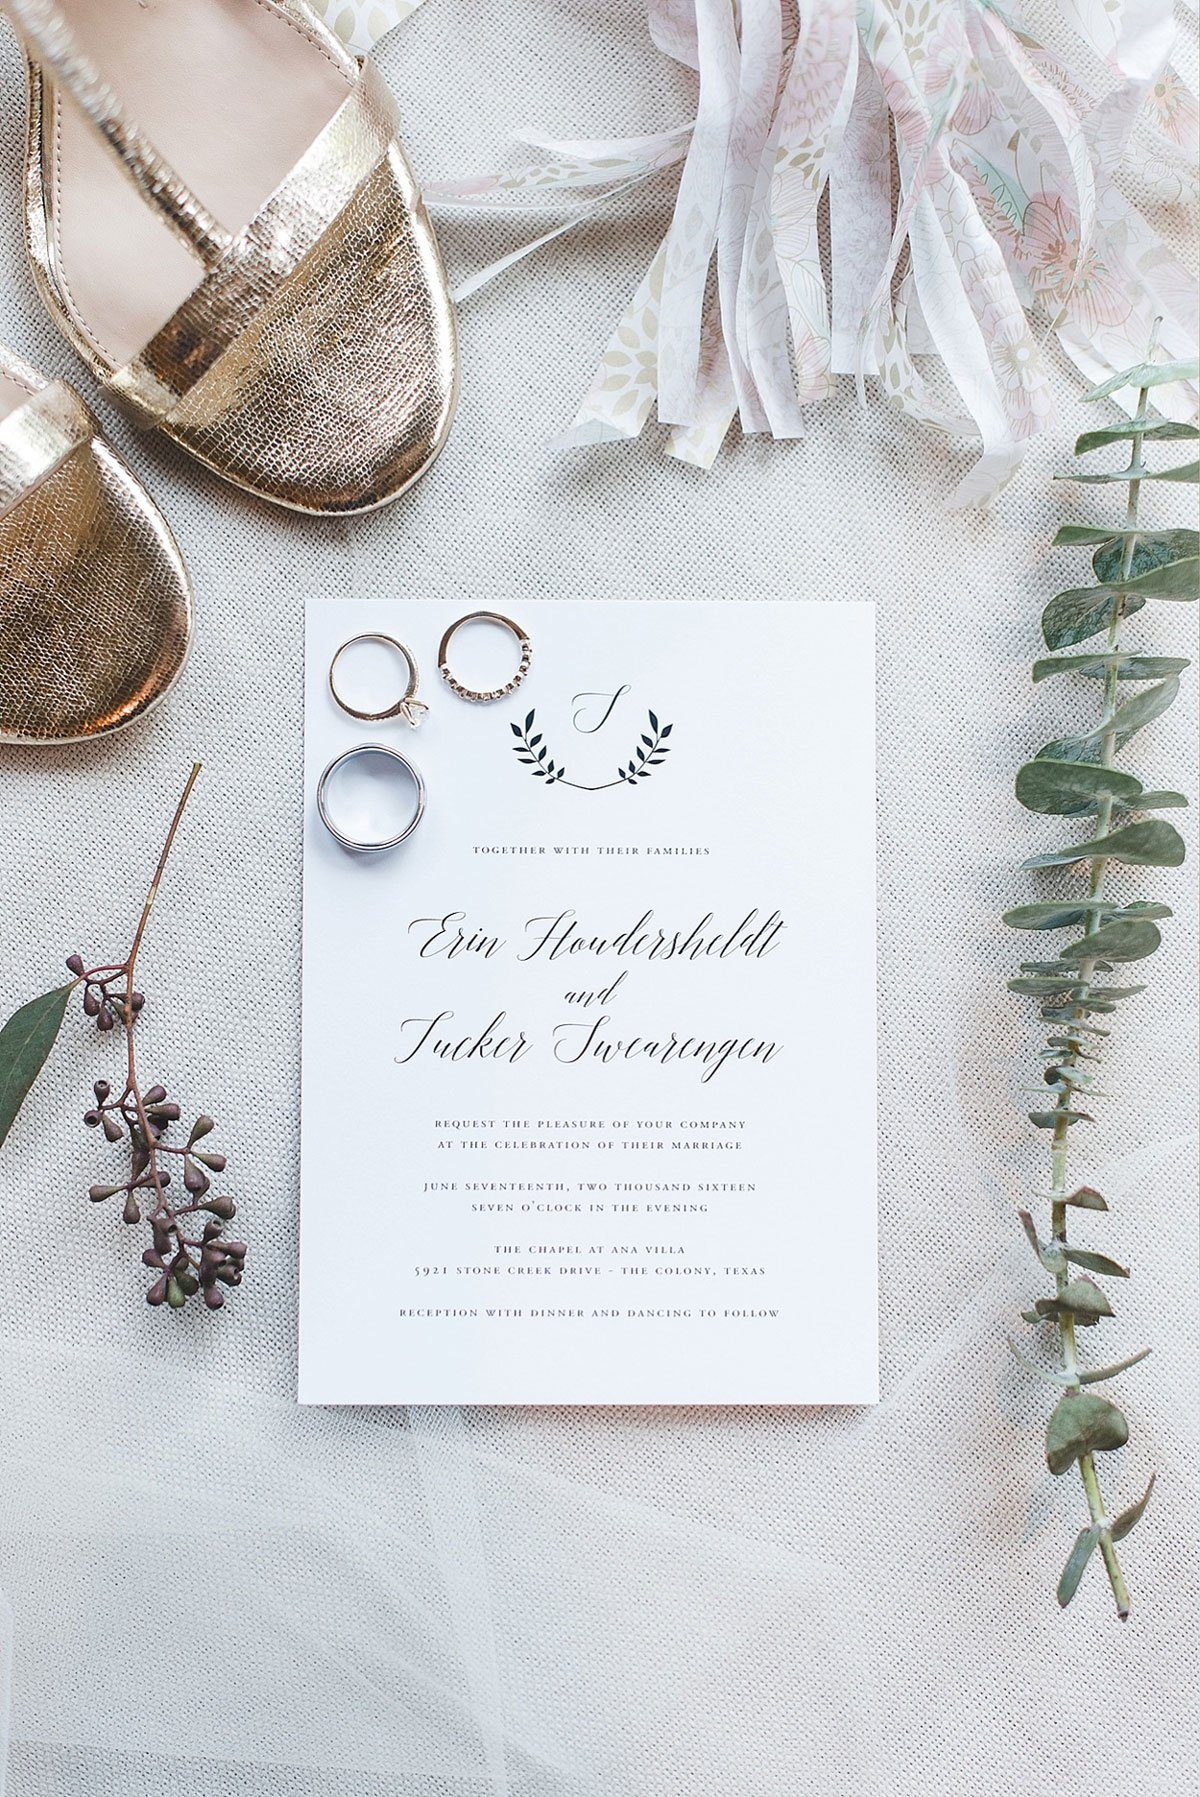 Calligraphy Wedding Invitations with a Monogram